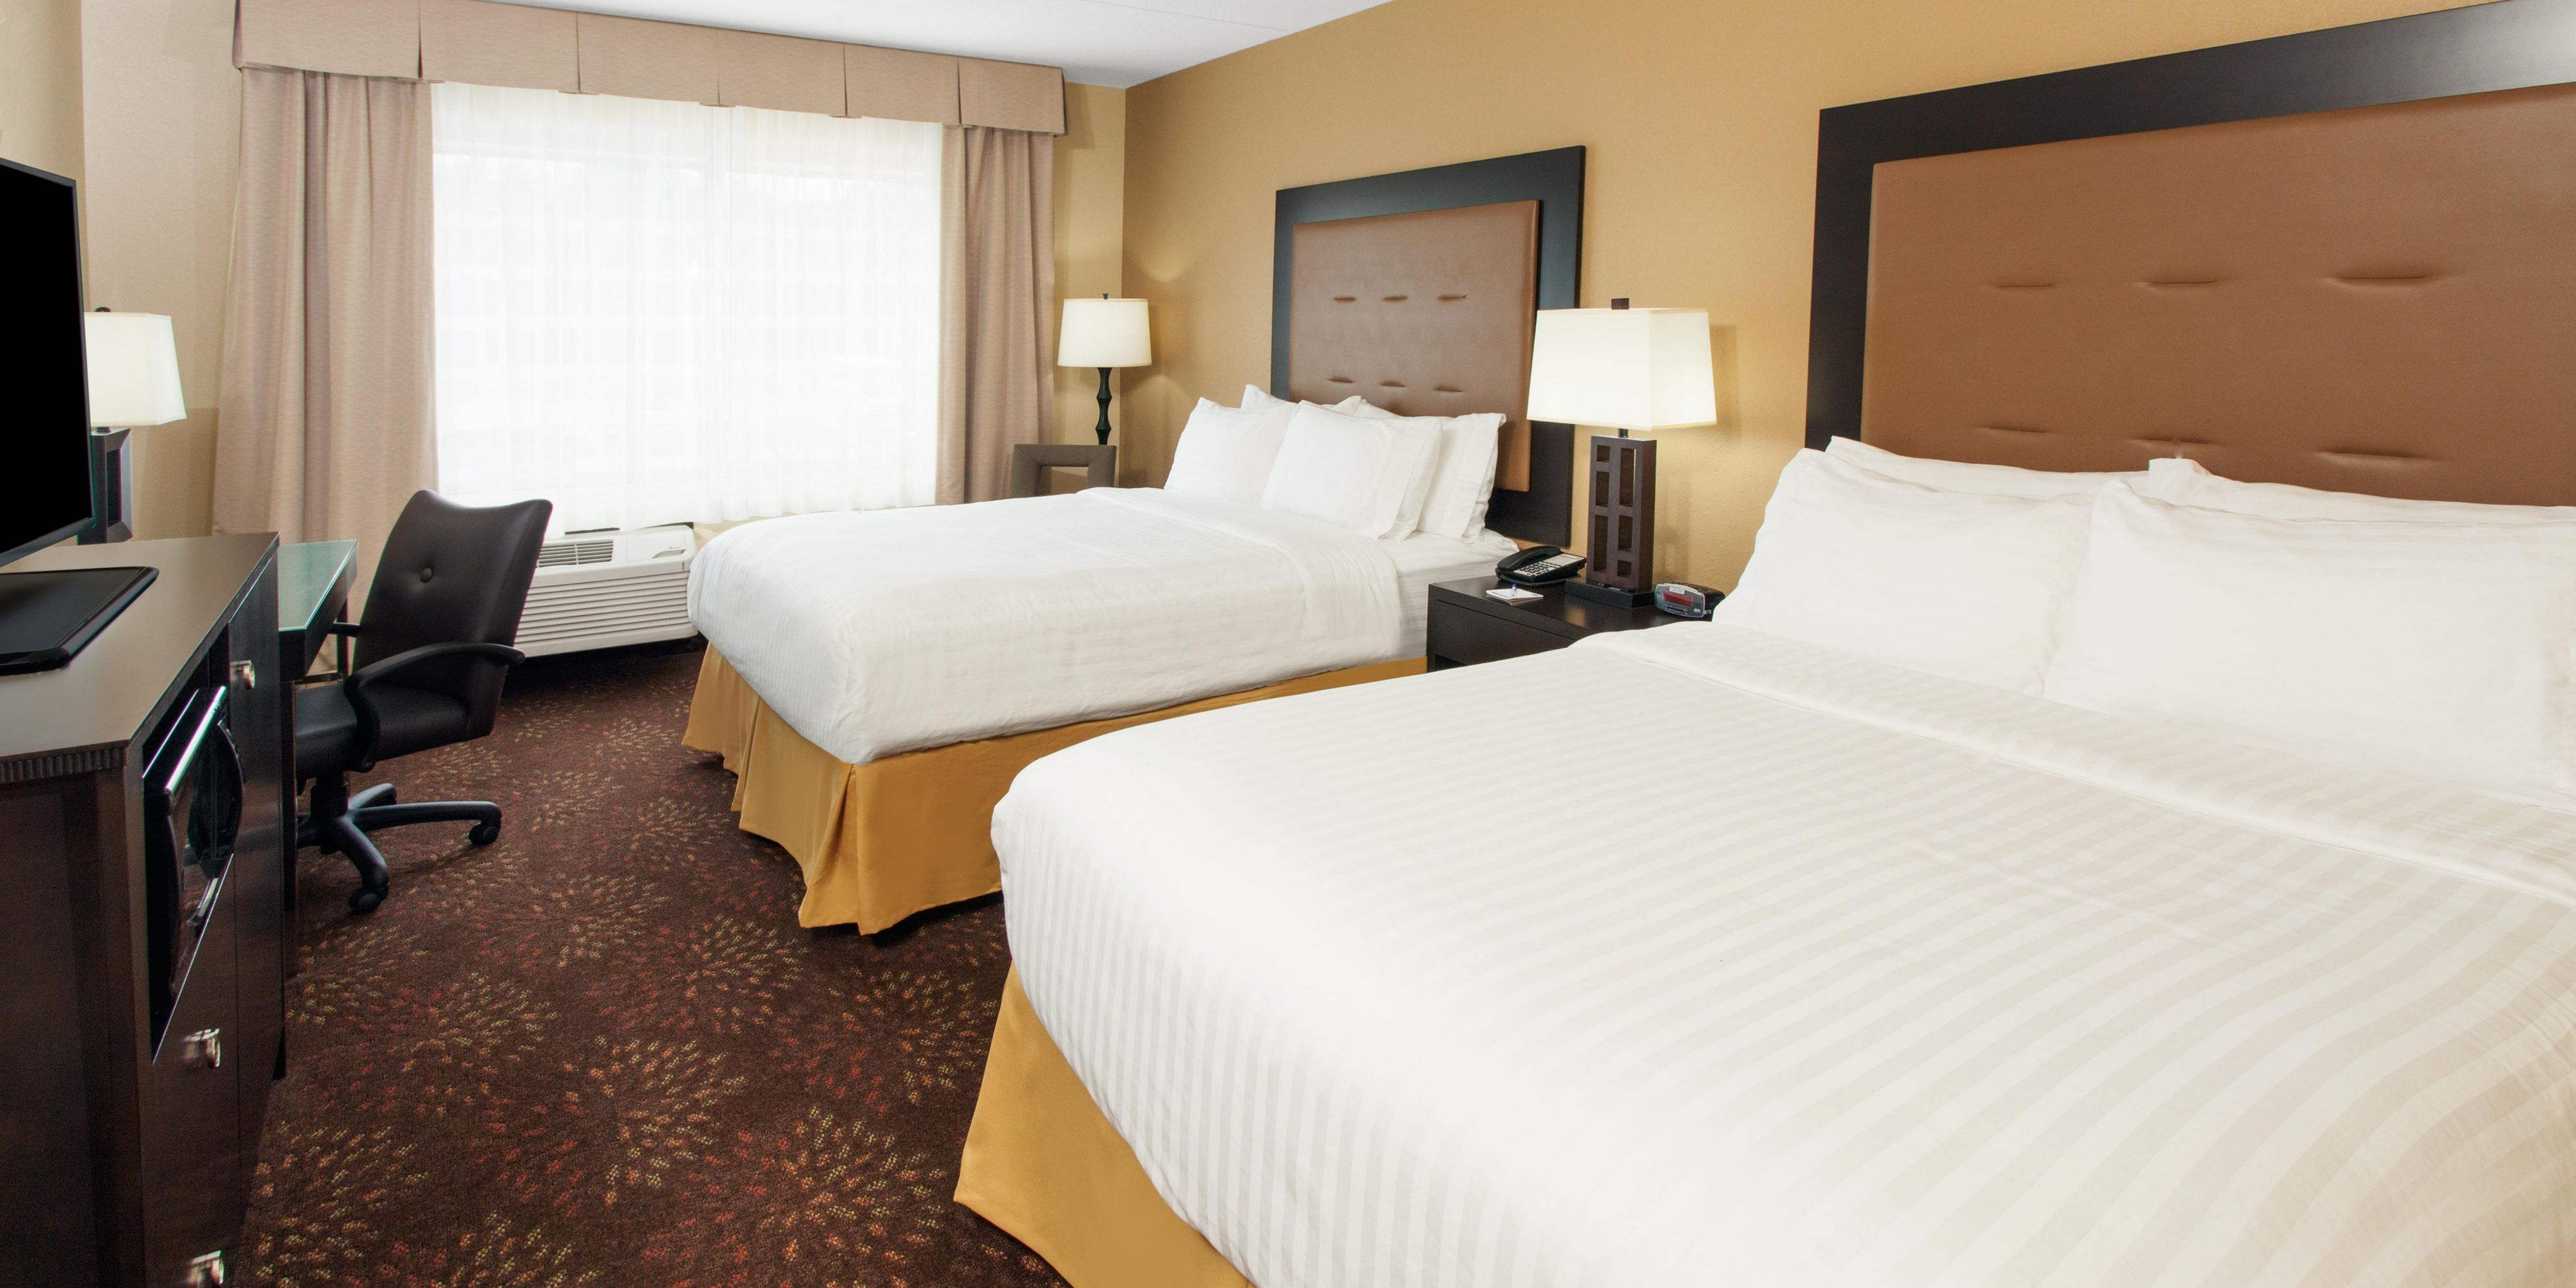 hotel near cedar point - holiday inn express hotel sandusky, oh